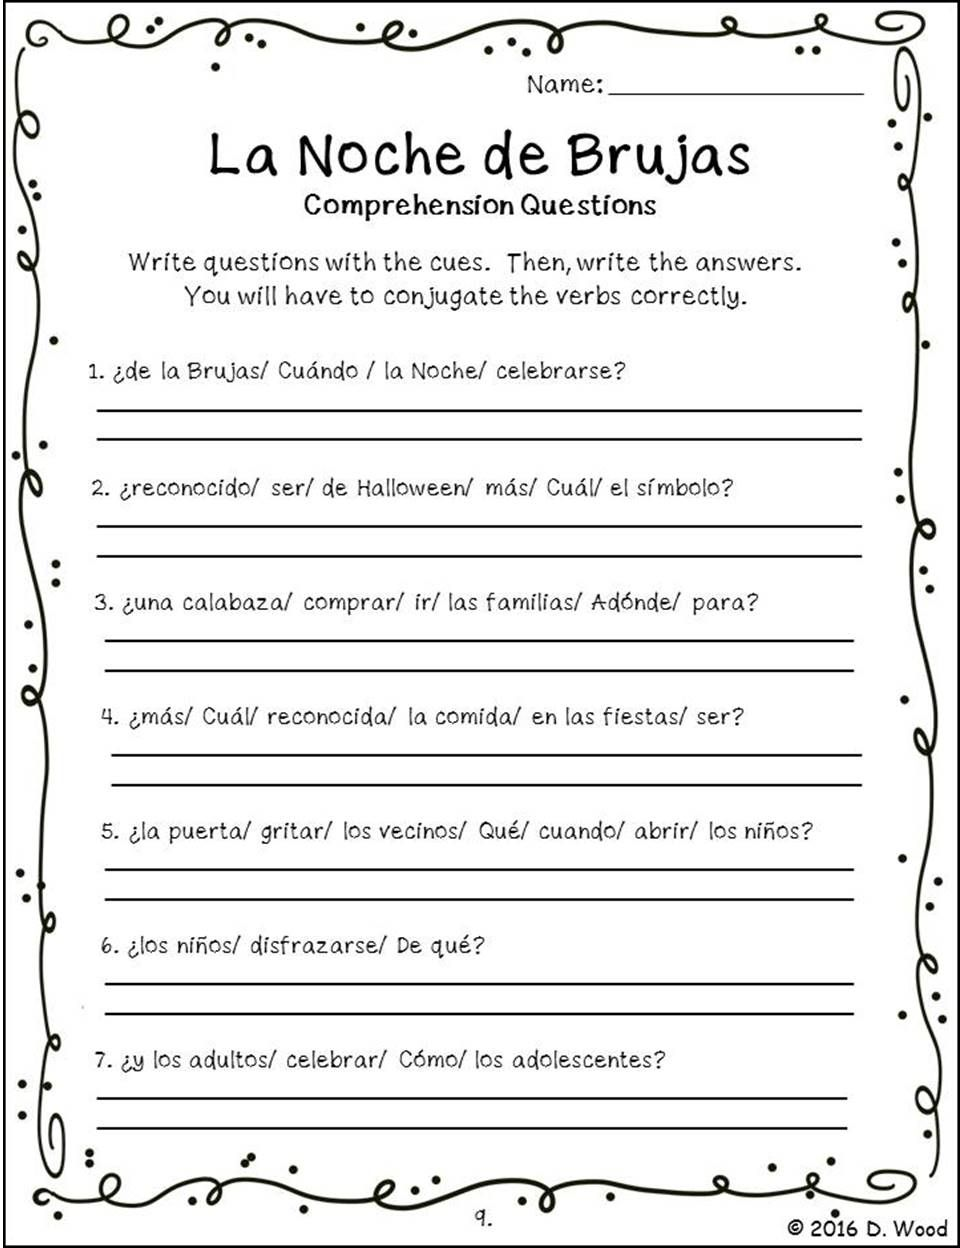 Worksheets Spanish Comprehension Worksheets halloween spanish la noche de brujas debbie wood bilingual english reading on the celebration of it includes a total 15 worksheets that focus writin